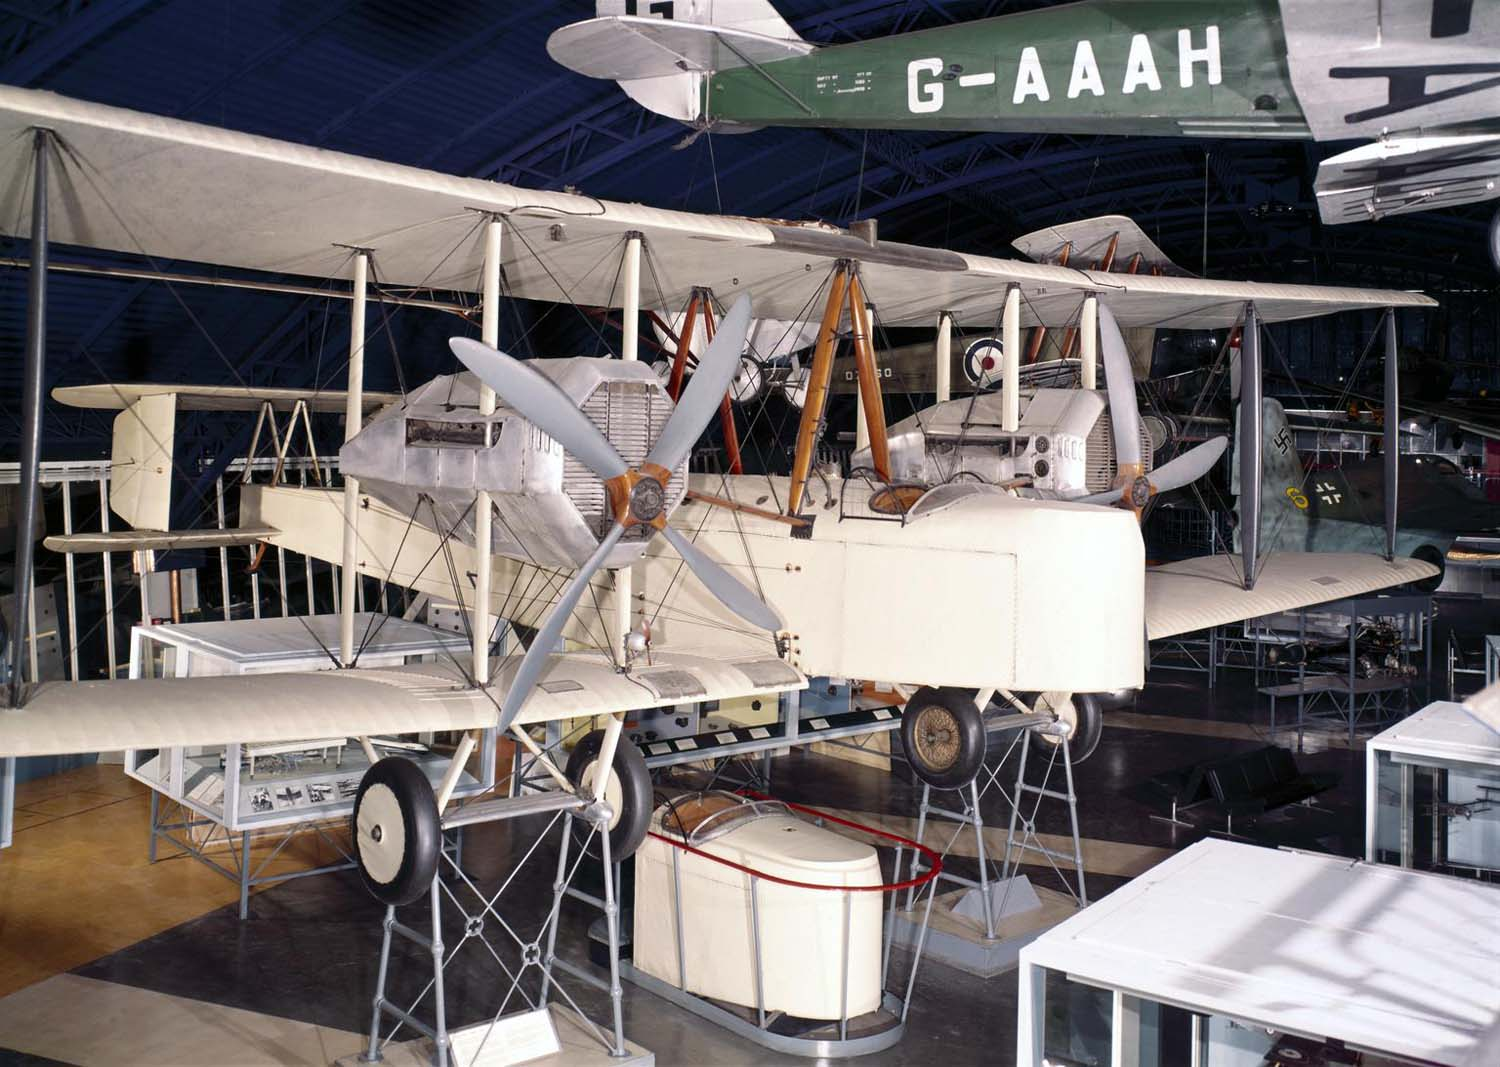 a photo of a large biplane suspended in a museum gallery